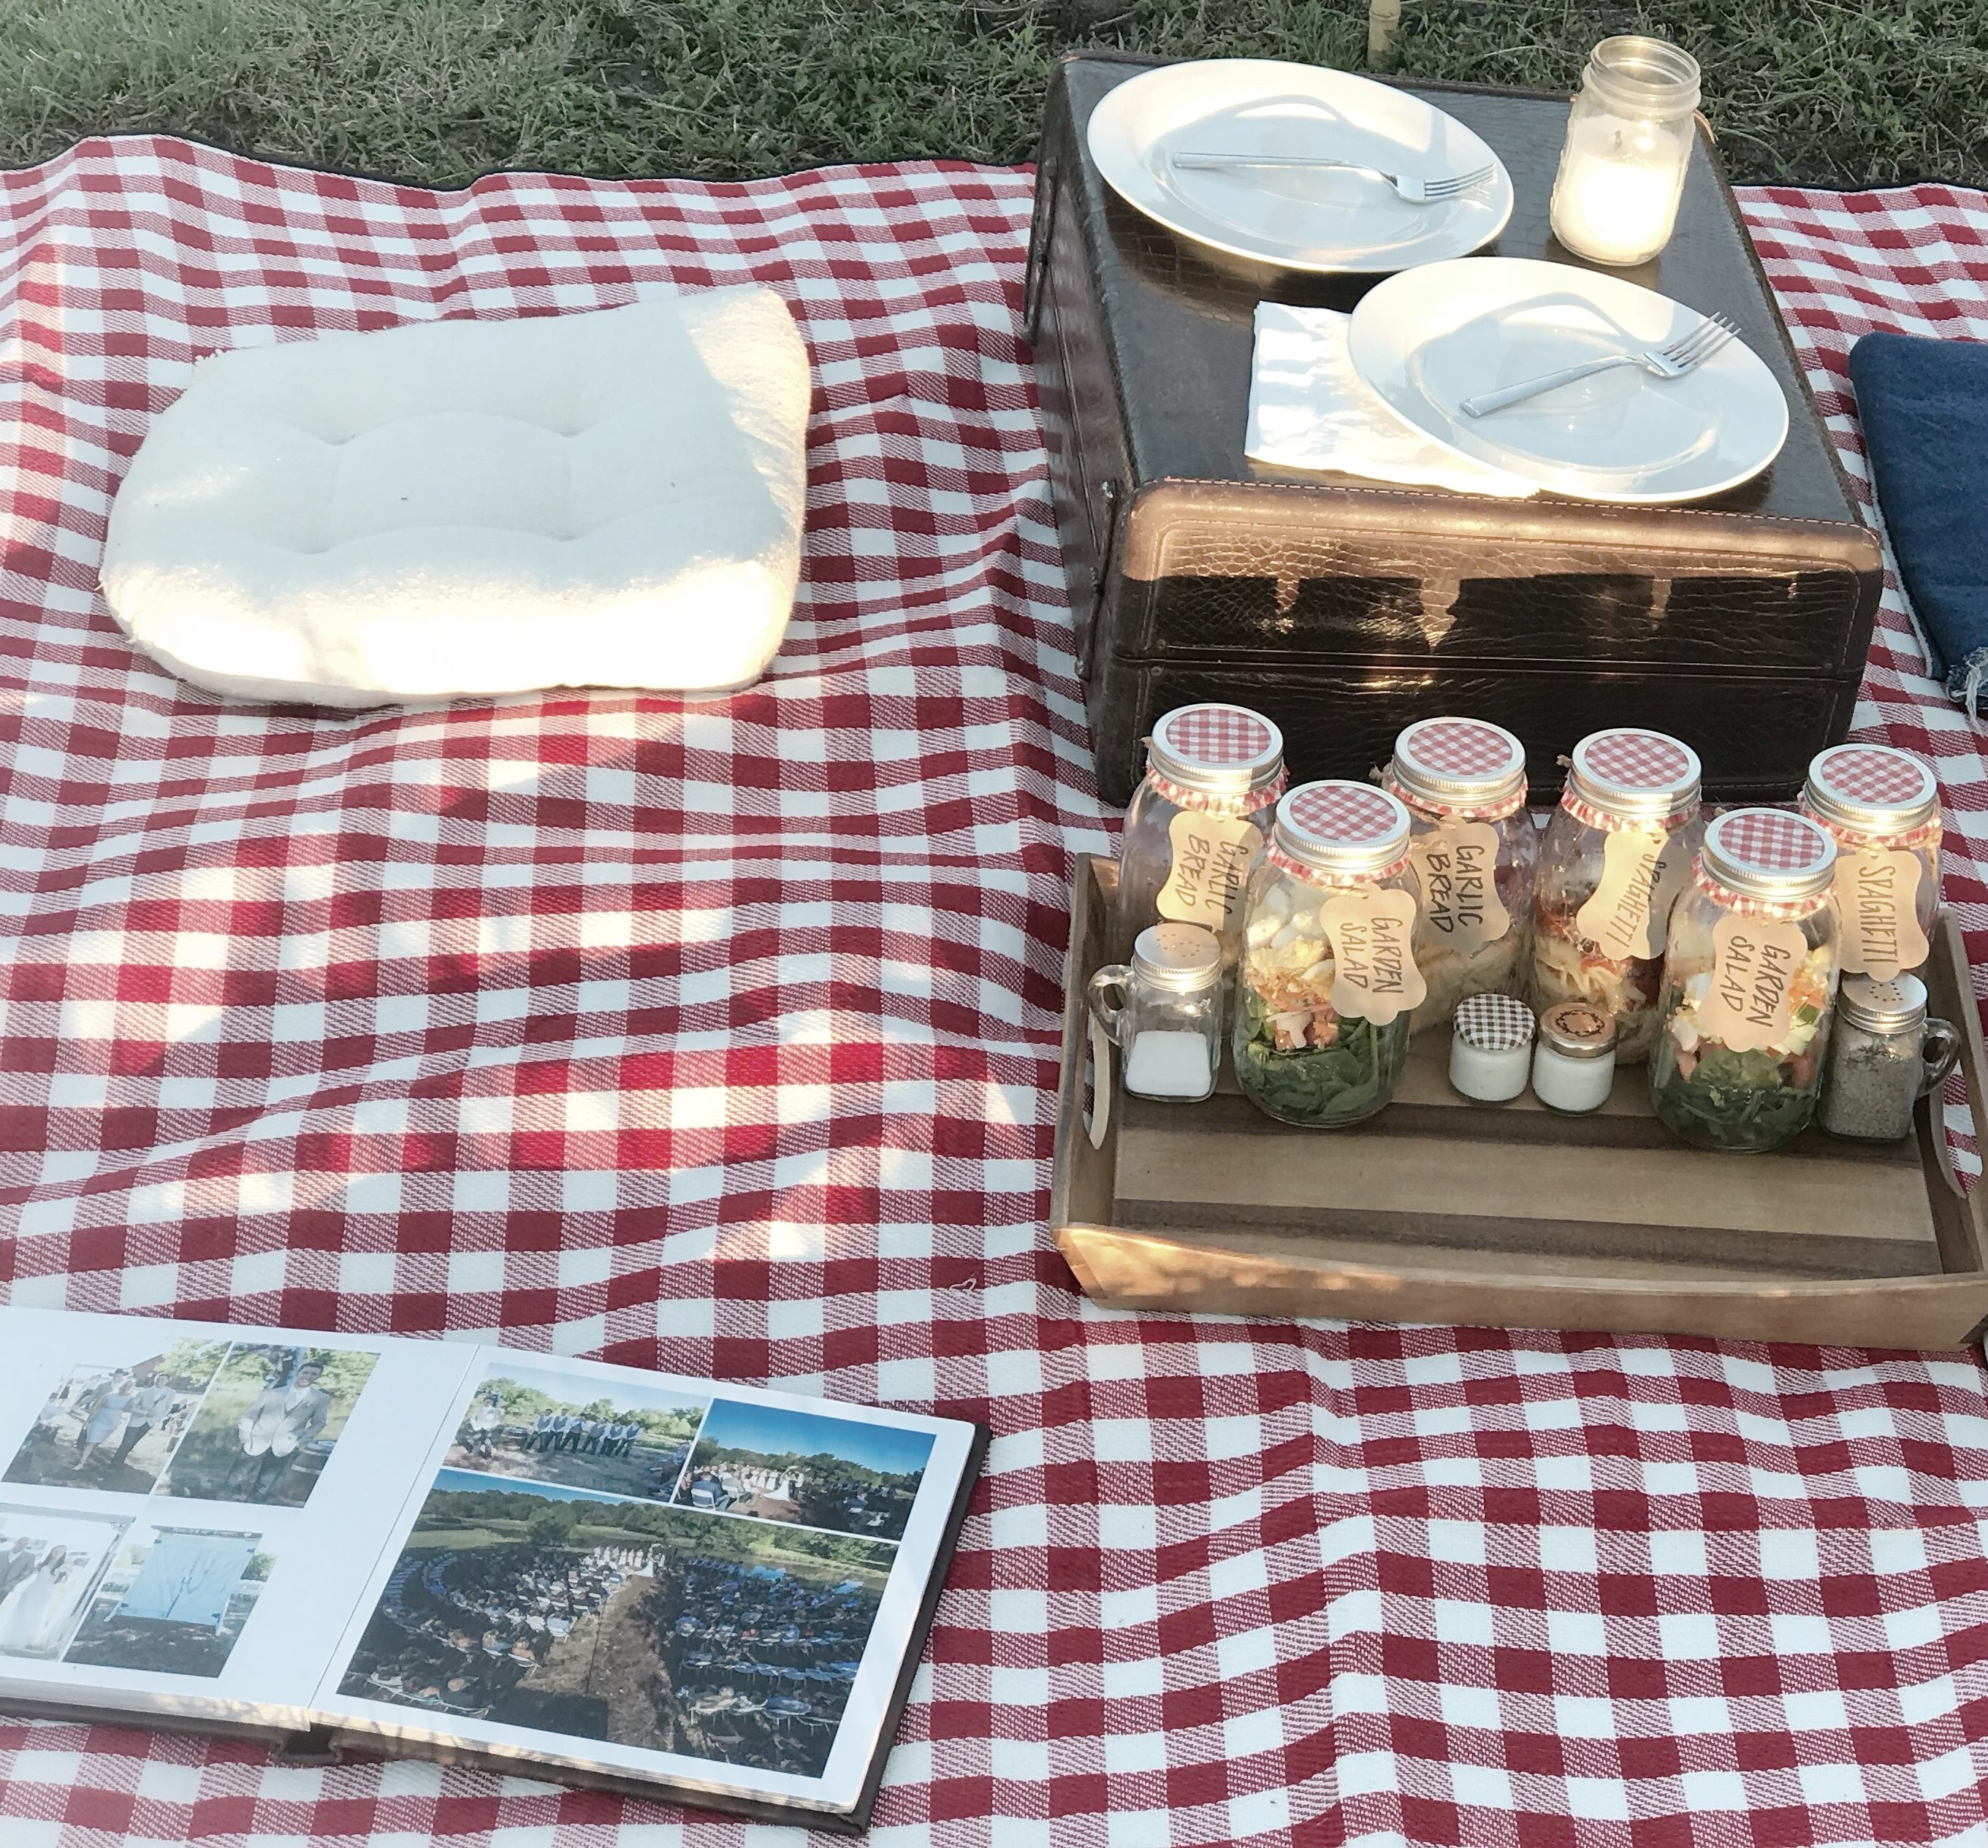 mason jar meals, red gingham, picnic setting, romantic